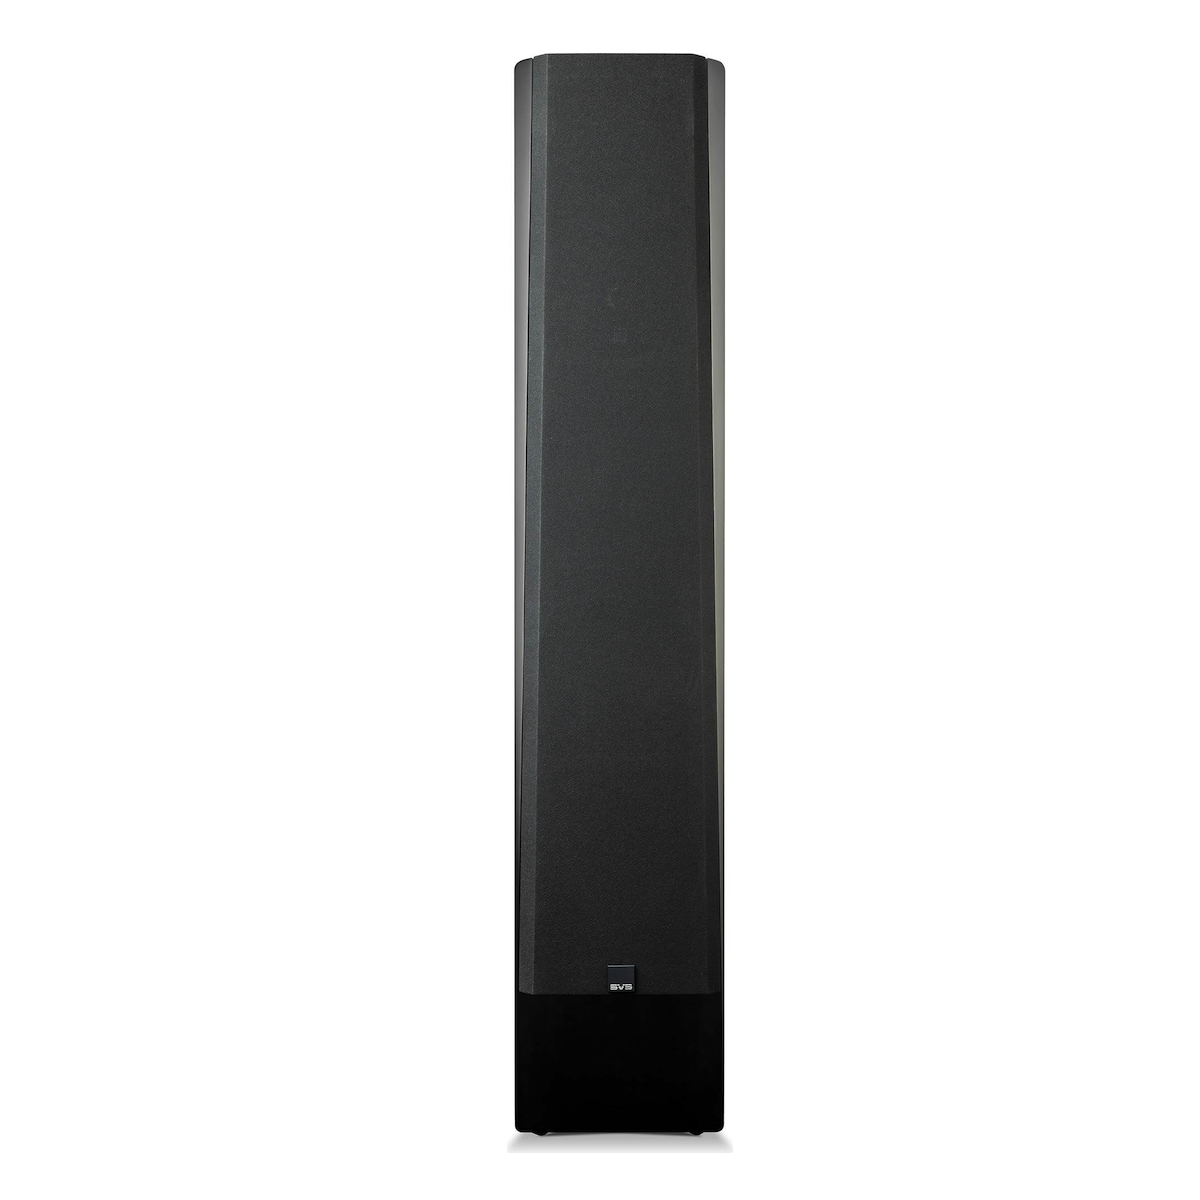 SVS Sound Prime Pinnacle - Floor Standing Speaker - Pair, SVS Sound, Floor Standing Speaker - AVStore.in